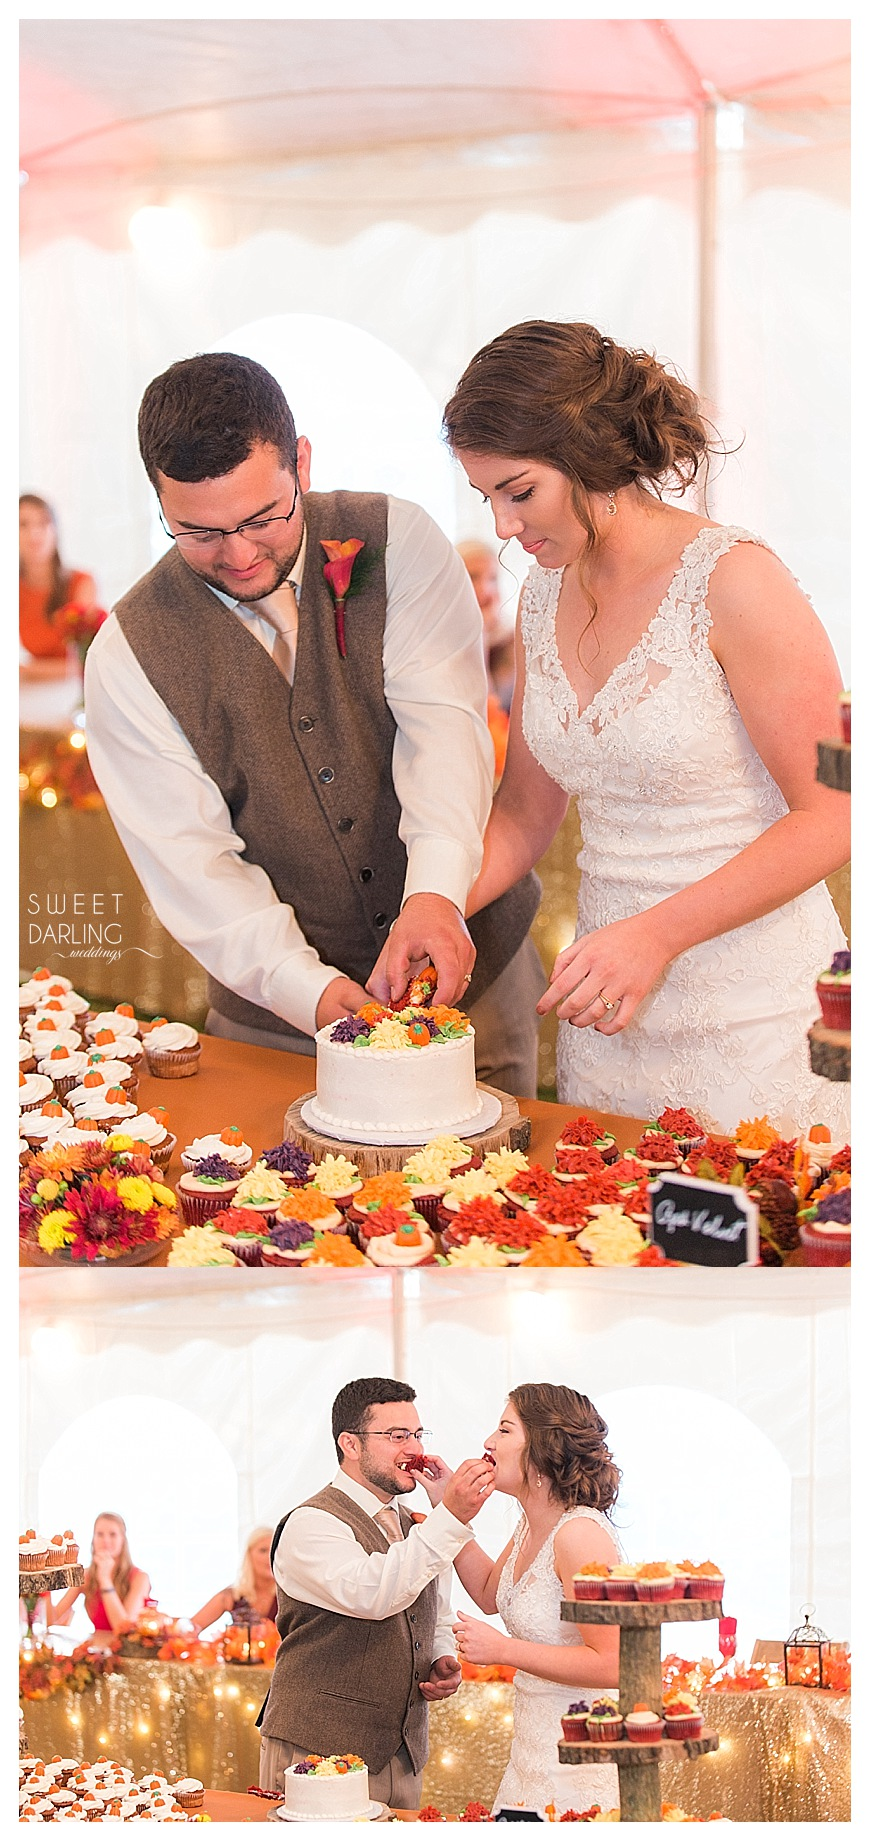 bride and groom cutting cake with fall red, orange and yellow leaves cupcakes